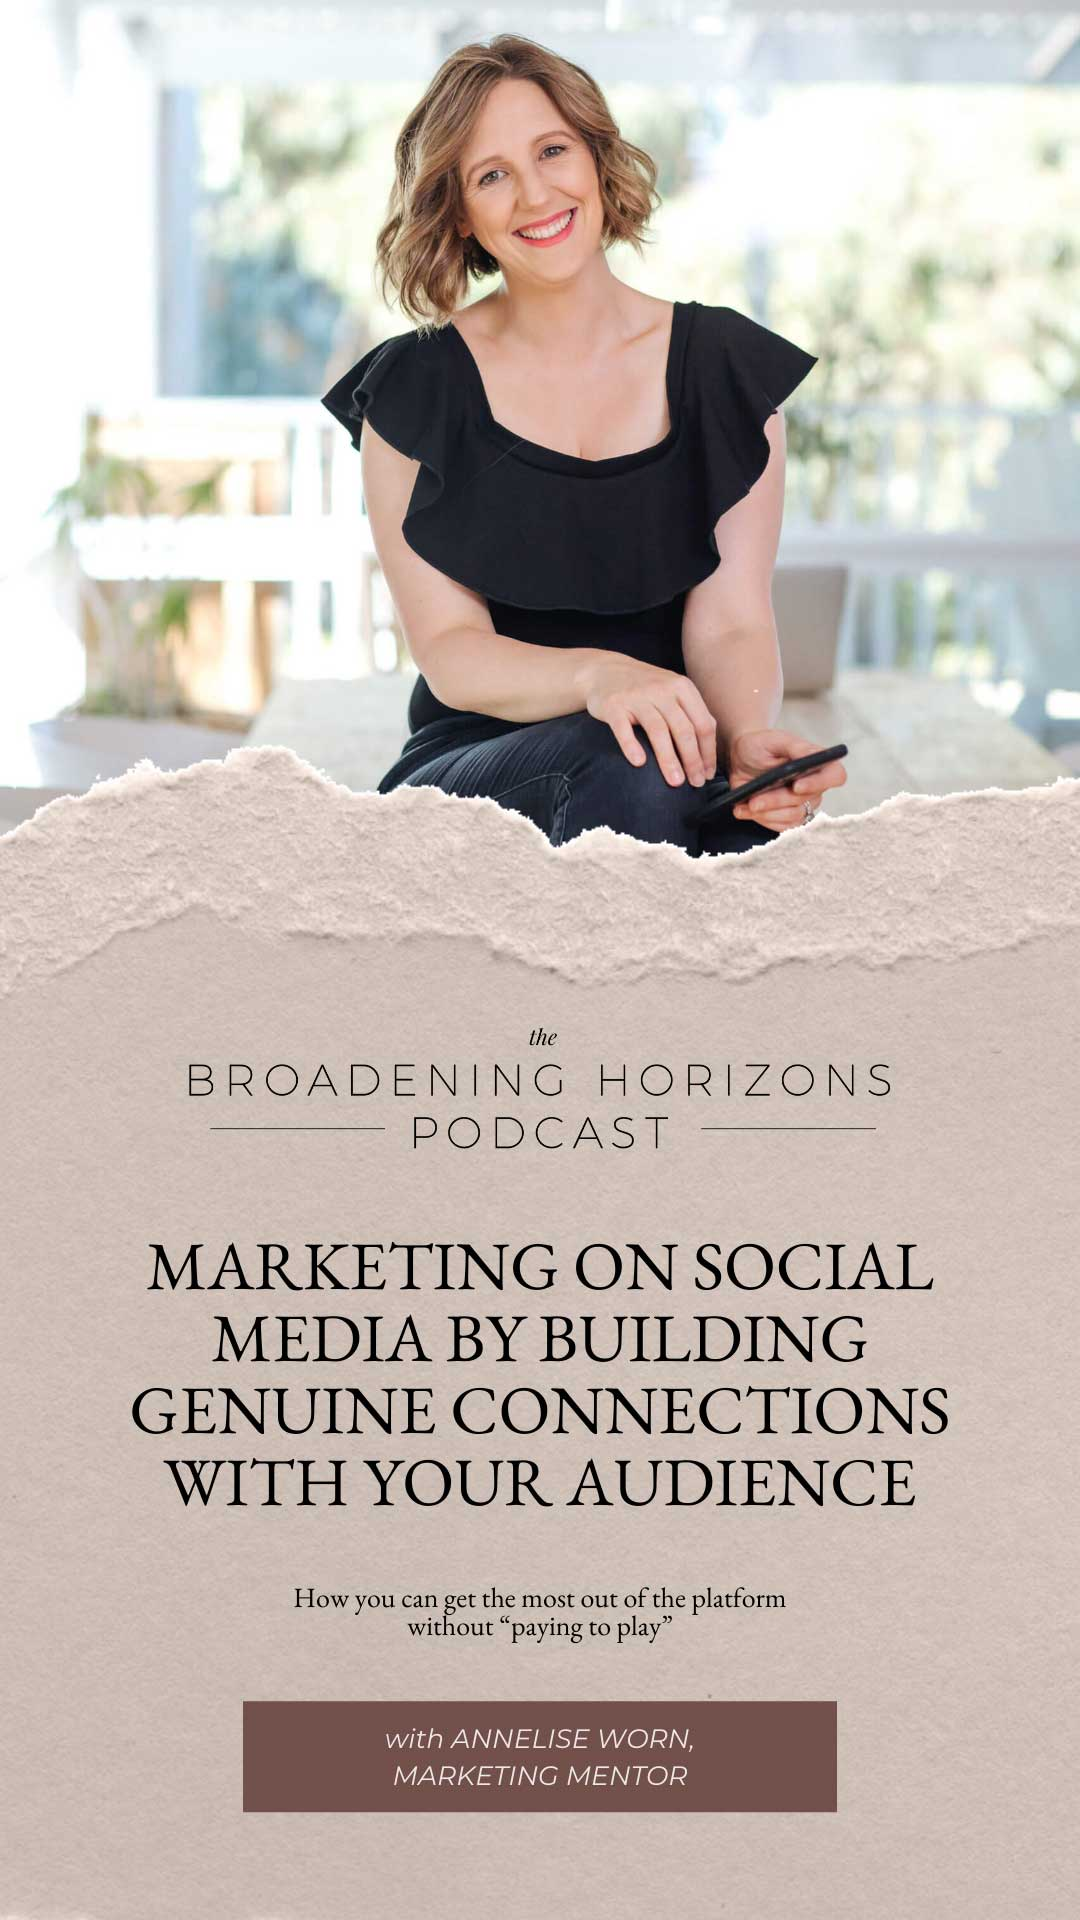 Marketing on Social Media by Building Genuine Connections with Your Audience with Annelise Worn from www.sweethorizonblog.com